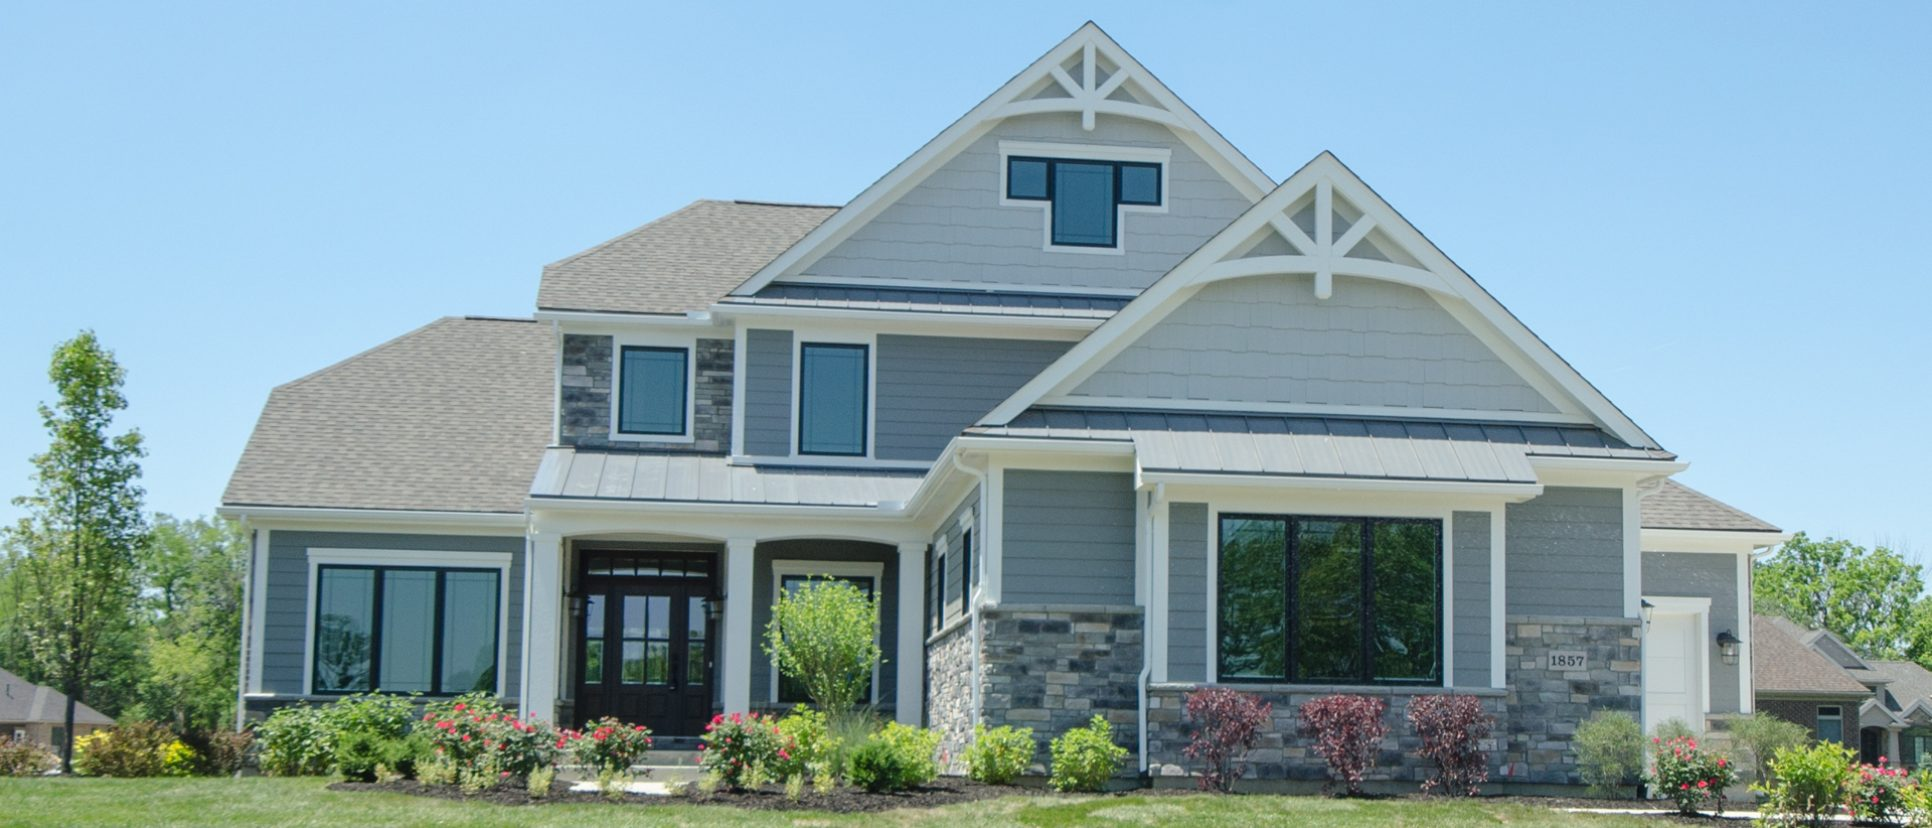 Custom exterior of The Arianna. Built by Design Homes and Development.